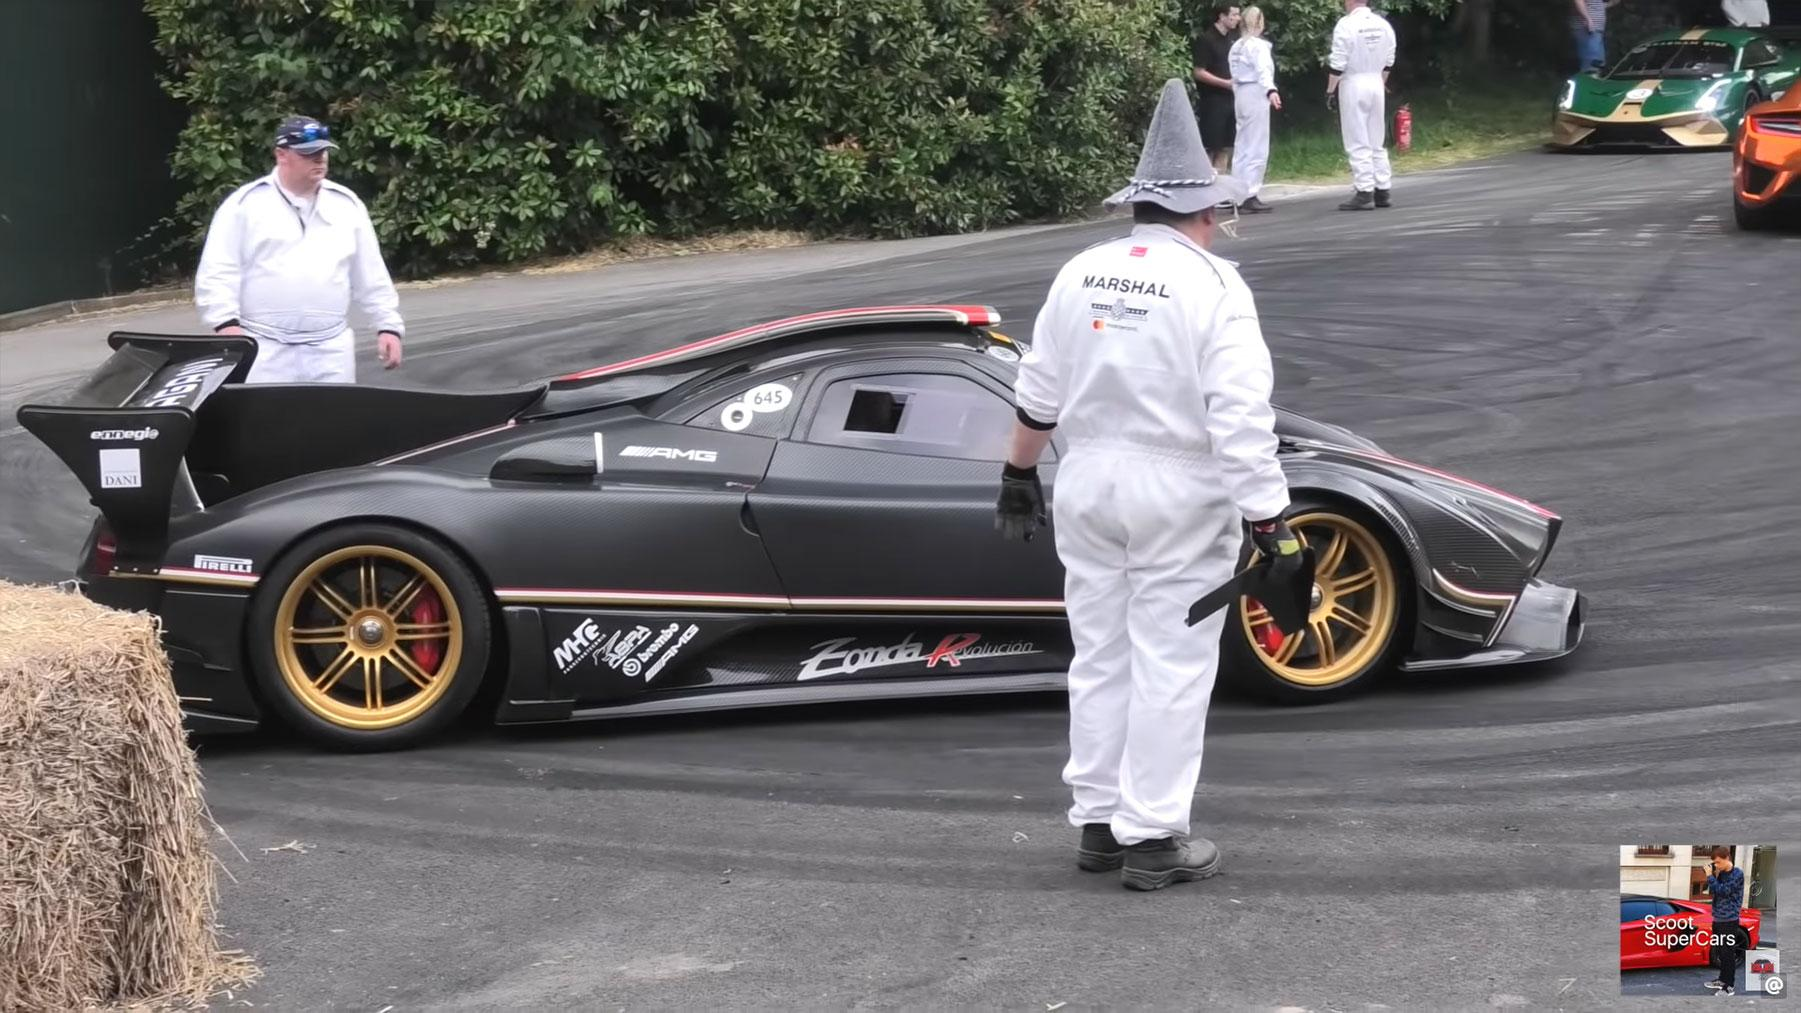 Pagani Zonda R crash goodwood